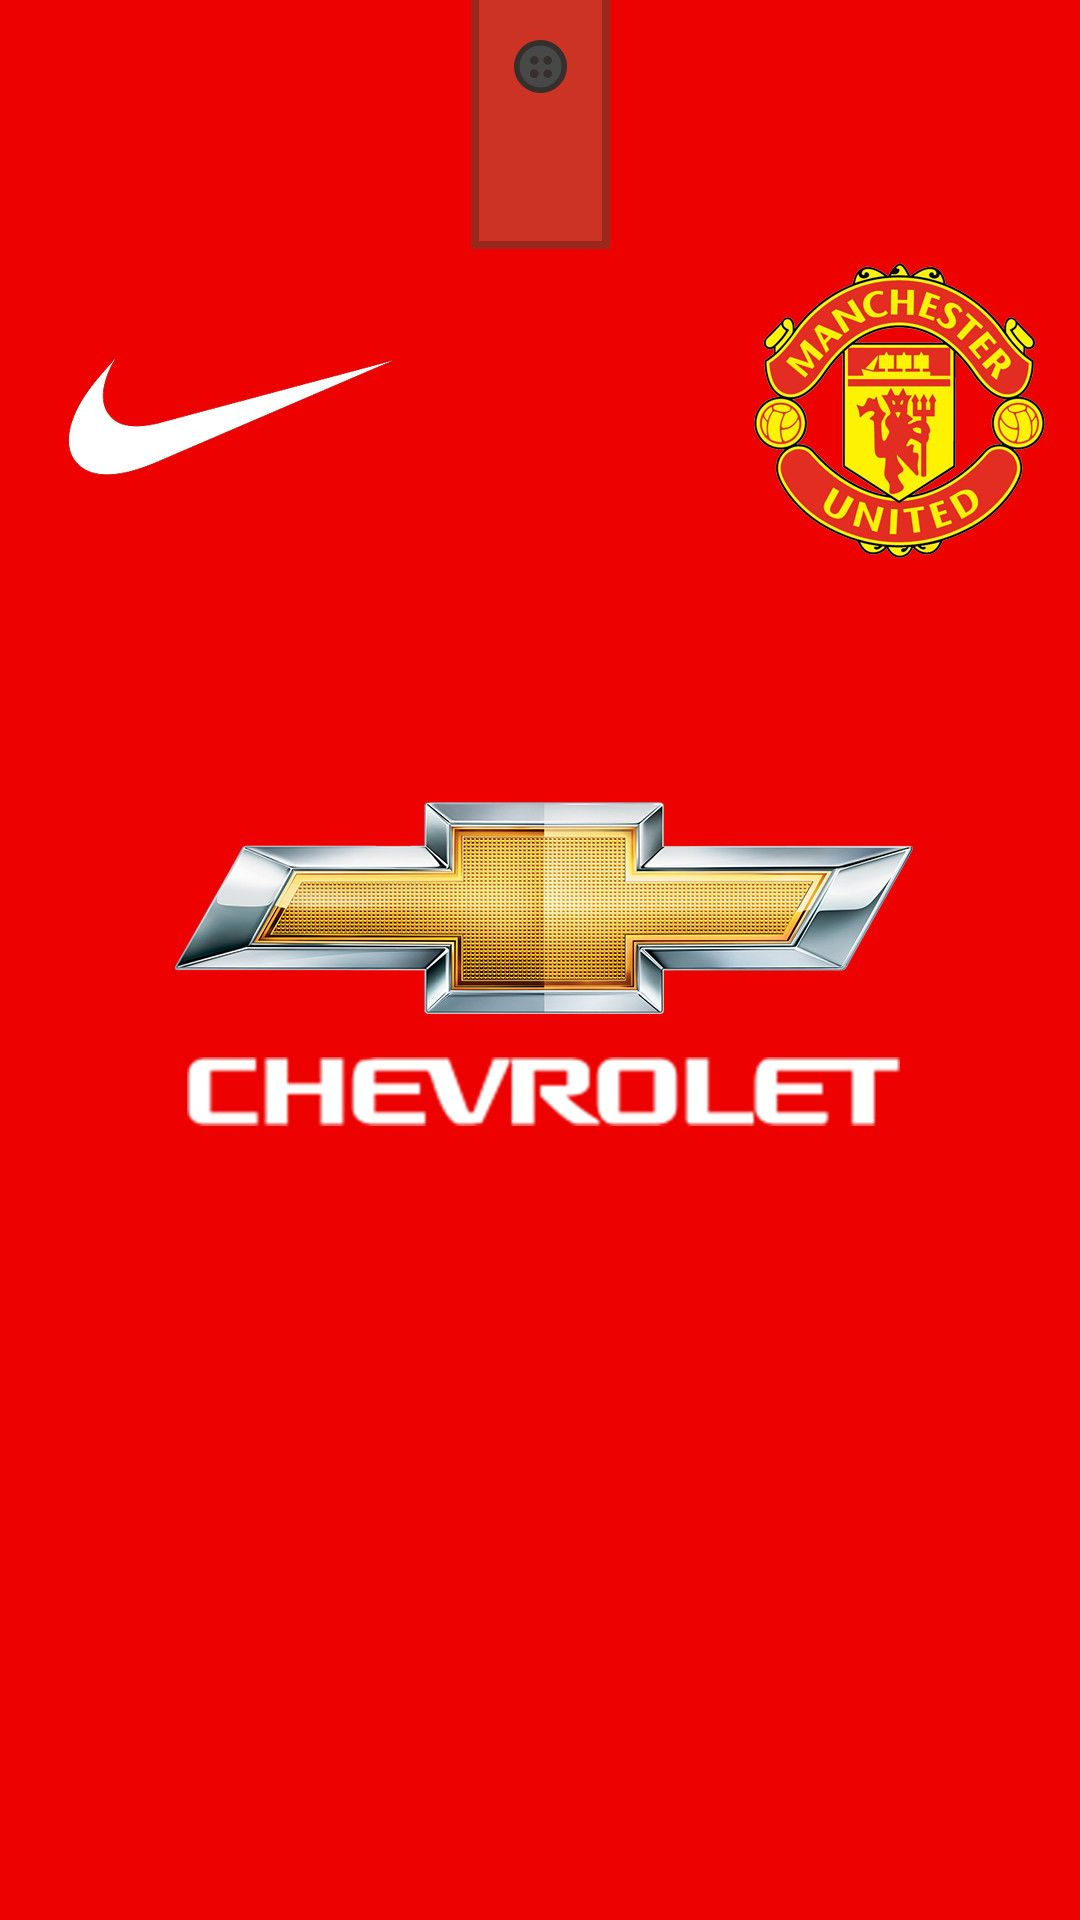 Badass Alabama Wallpaper Android On Home Screen On Kecbio Com Iphone Android Wallpaper Badass Alab In 2020 Manchester United Wallpaper The Unit Manchester United